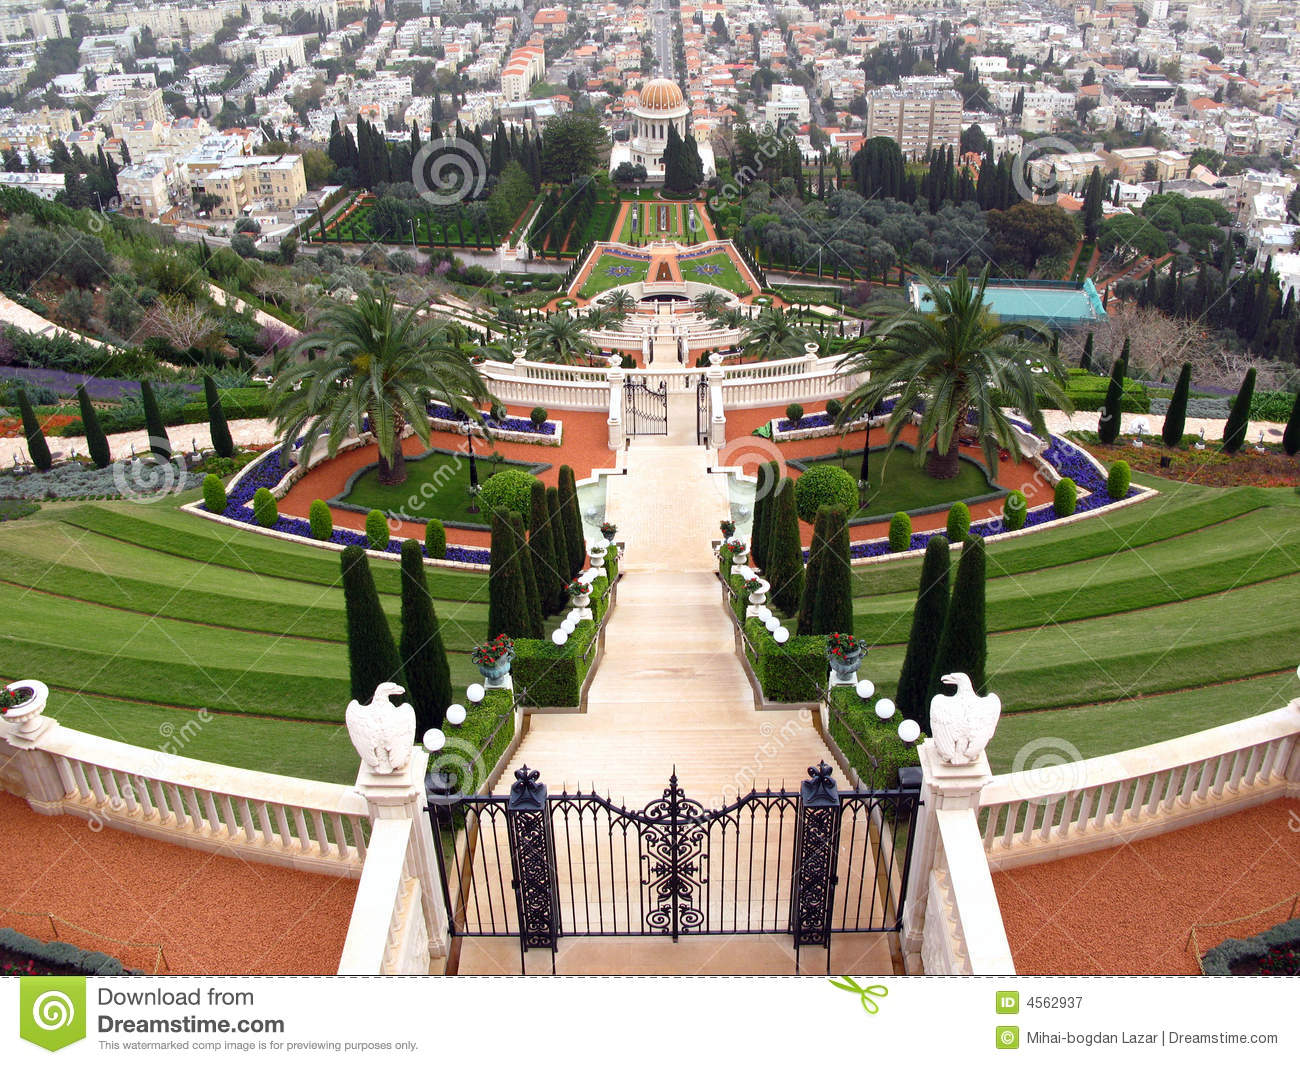 Bahai temple and terraces, Haifa, Israel